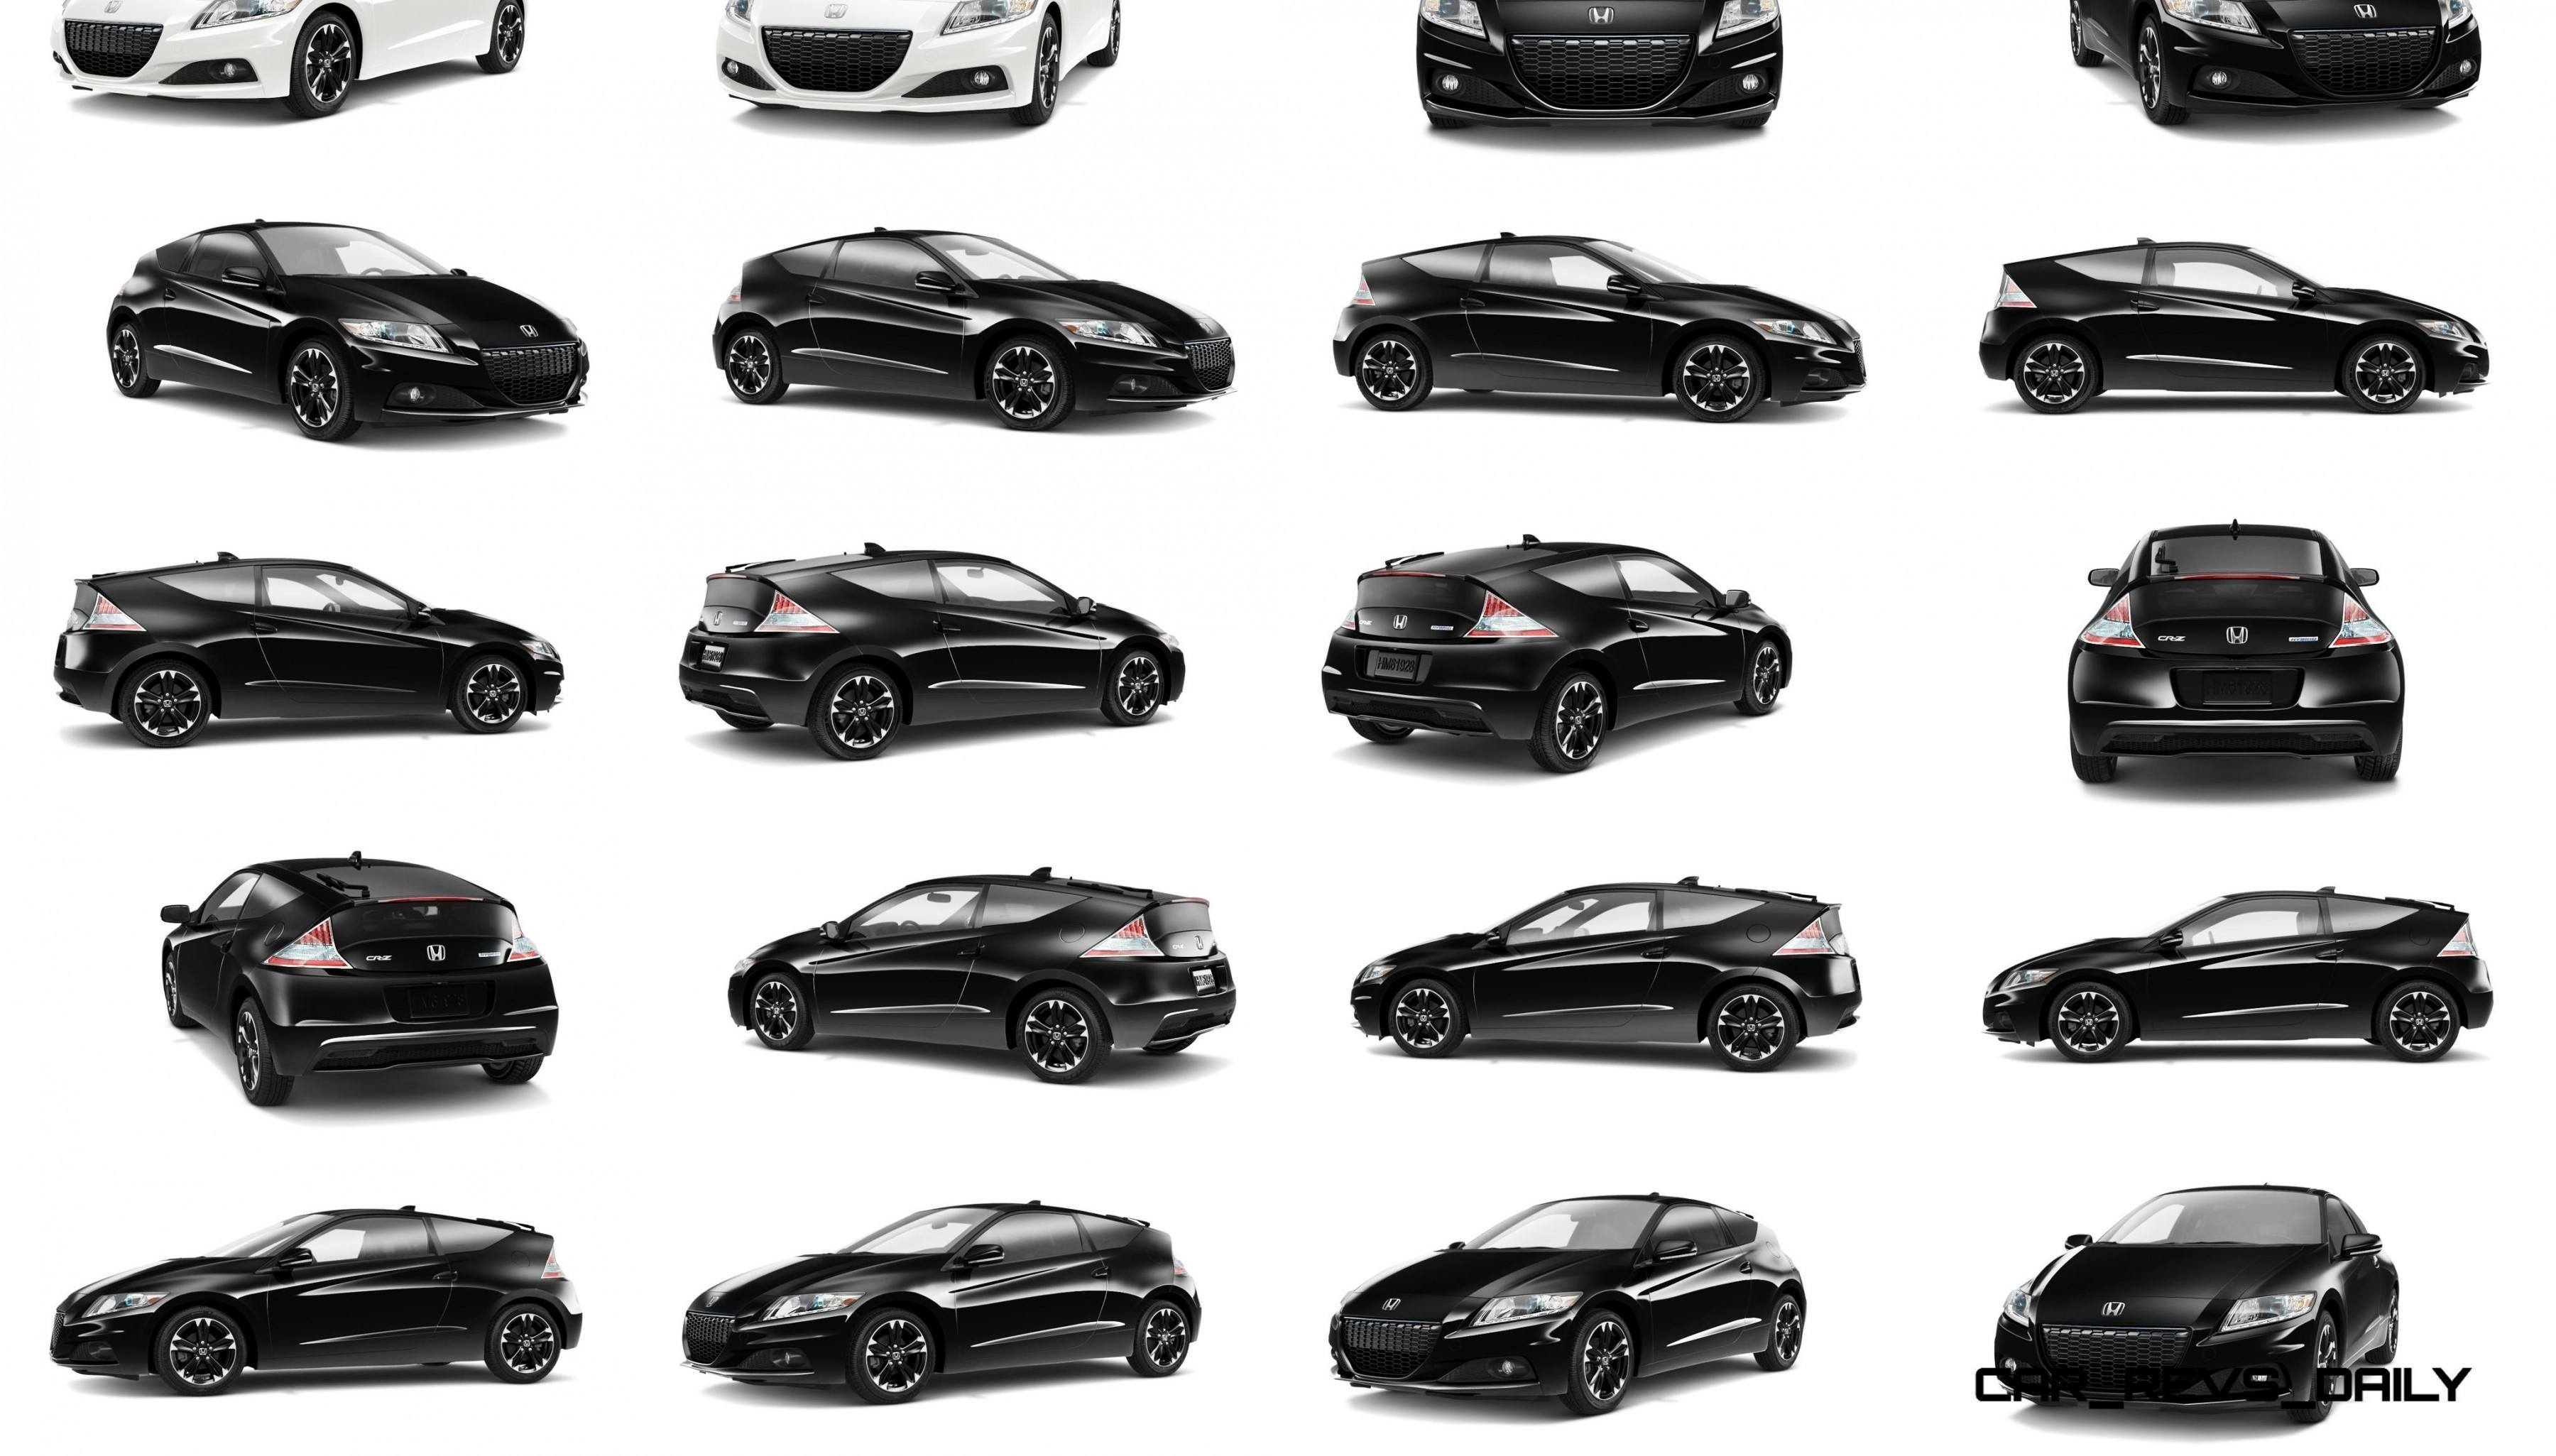 2014 Honda CR-Z Buyers Guide: Colors, Prices, Specs and